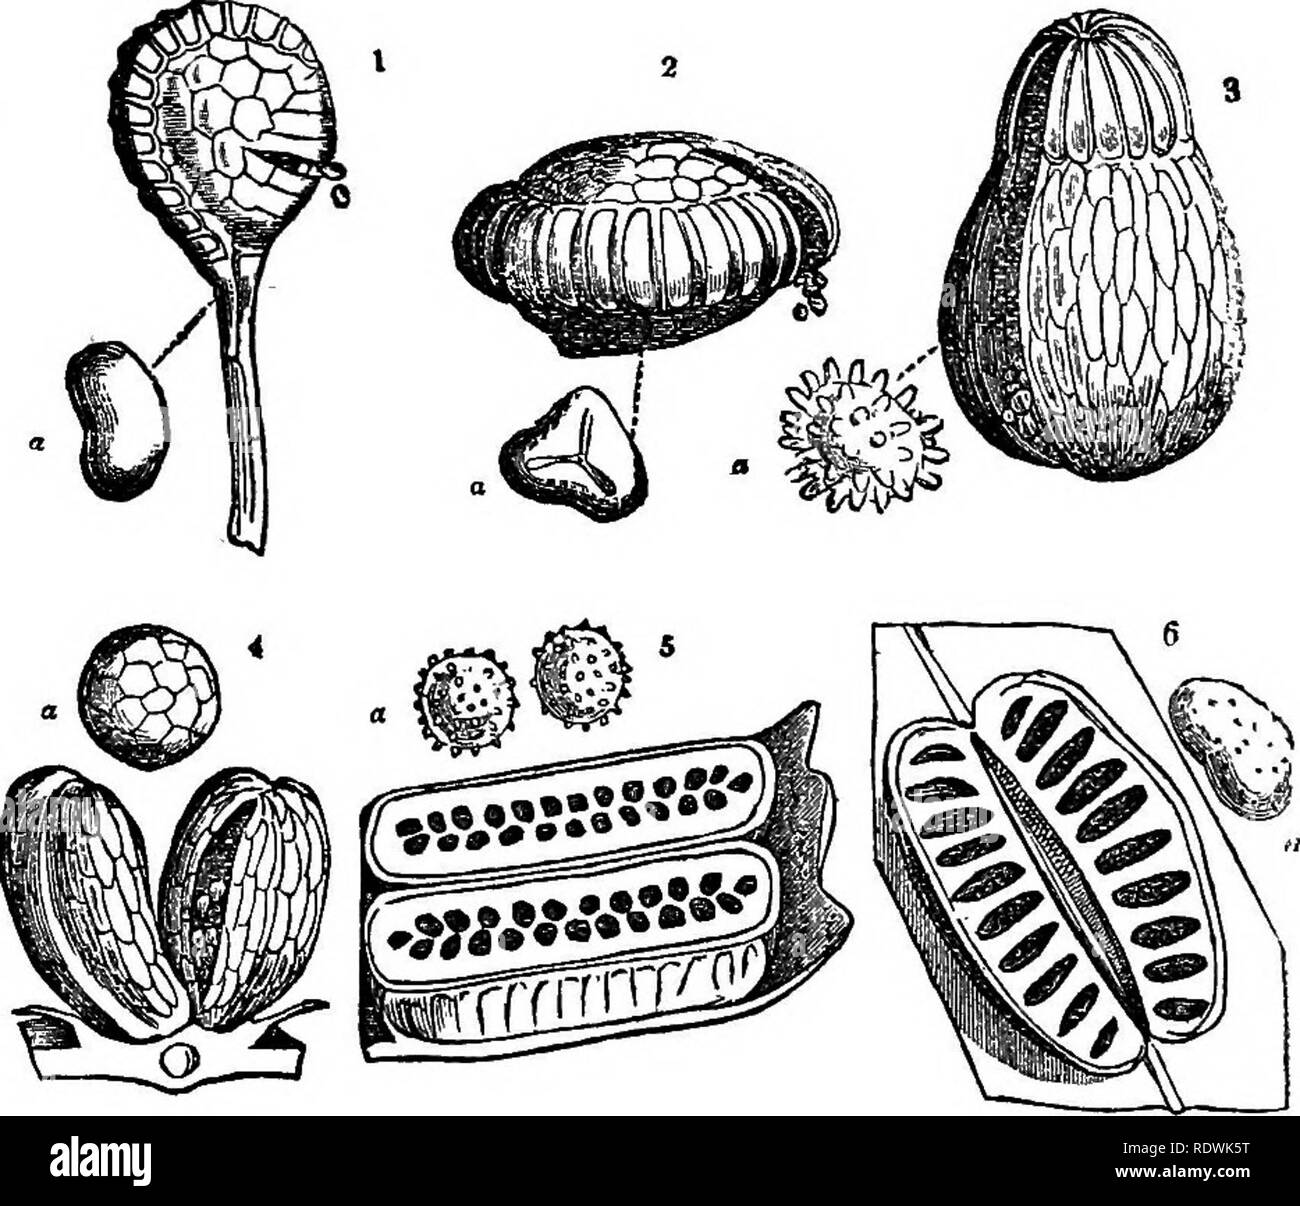 . Ferns: British & foreign. The history, organography, classification, and enumeration of the species of garden ferns with a treatise on their cultivation, etc. etc. Ferns. . Please note that these images are extracted from scanned page images that may have been digitally enhanced for readability - coloration and appearance of these illustrations may not perfectly resemble the original work.. Smith, John, 1798-1888. London, Hardwicke - Stock Image